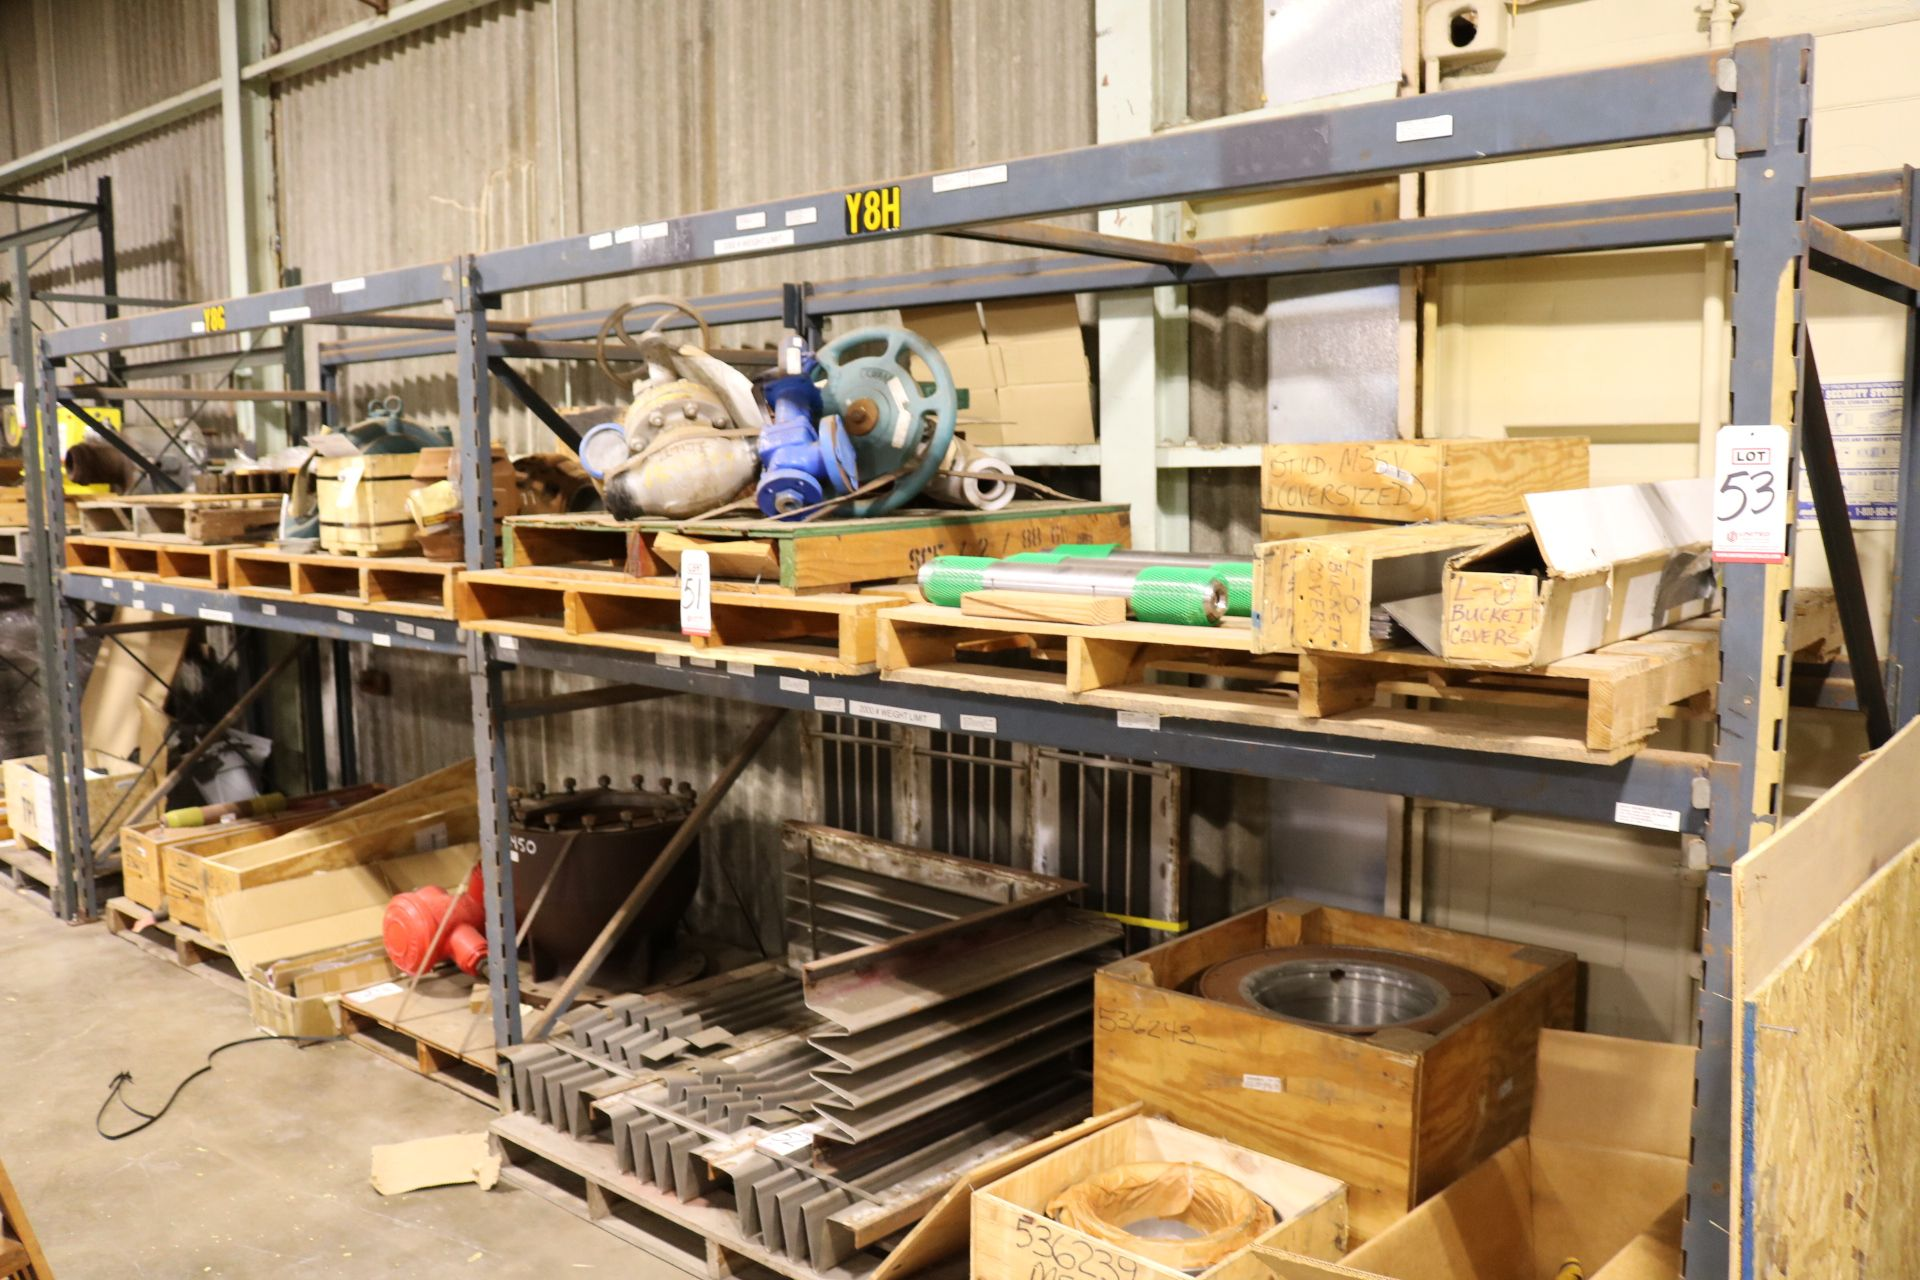 Lot 53 - LOT - (2) SECTIONS PALLET RACK, 9' BEAMS, 7' UPRIGHTS, CONTENTS NOT INCLUDED